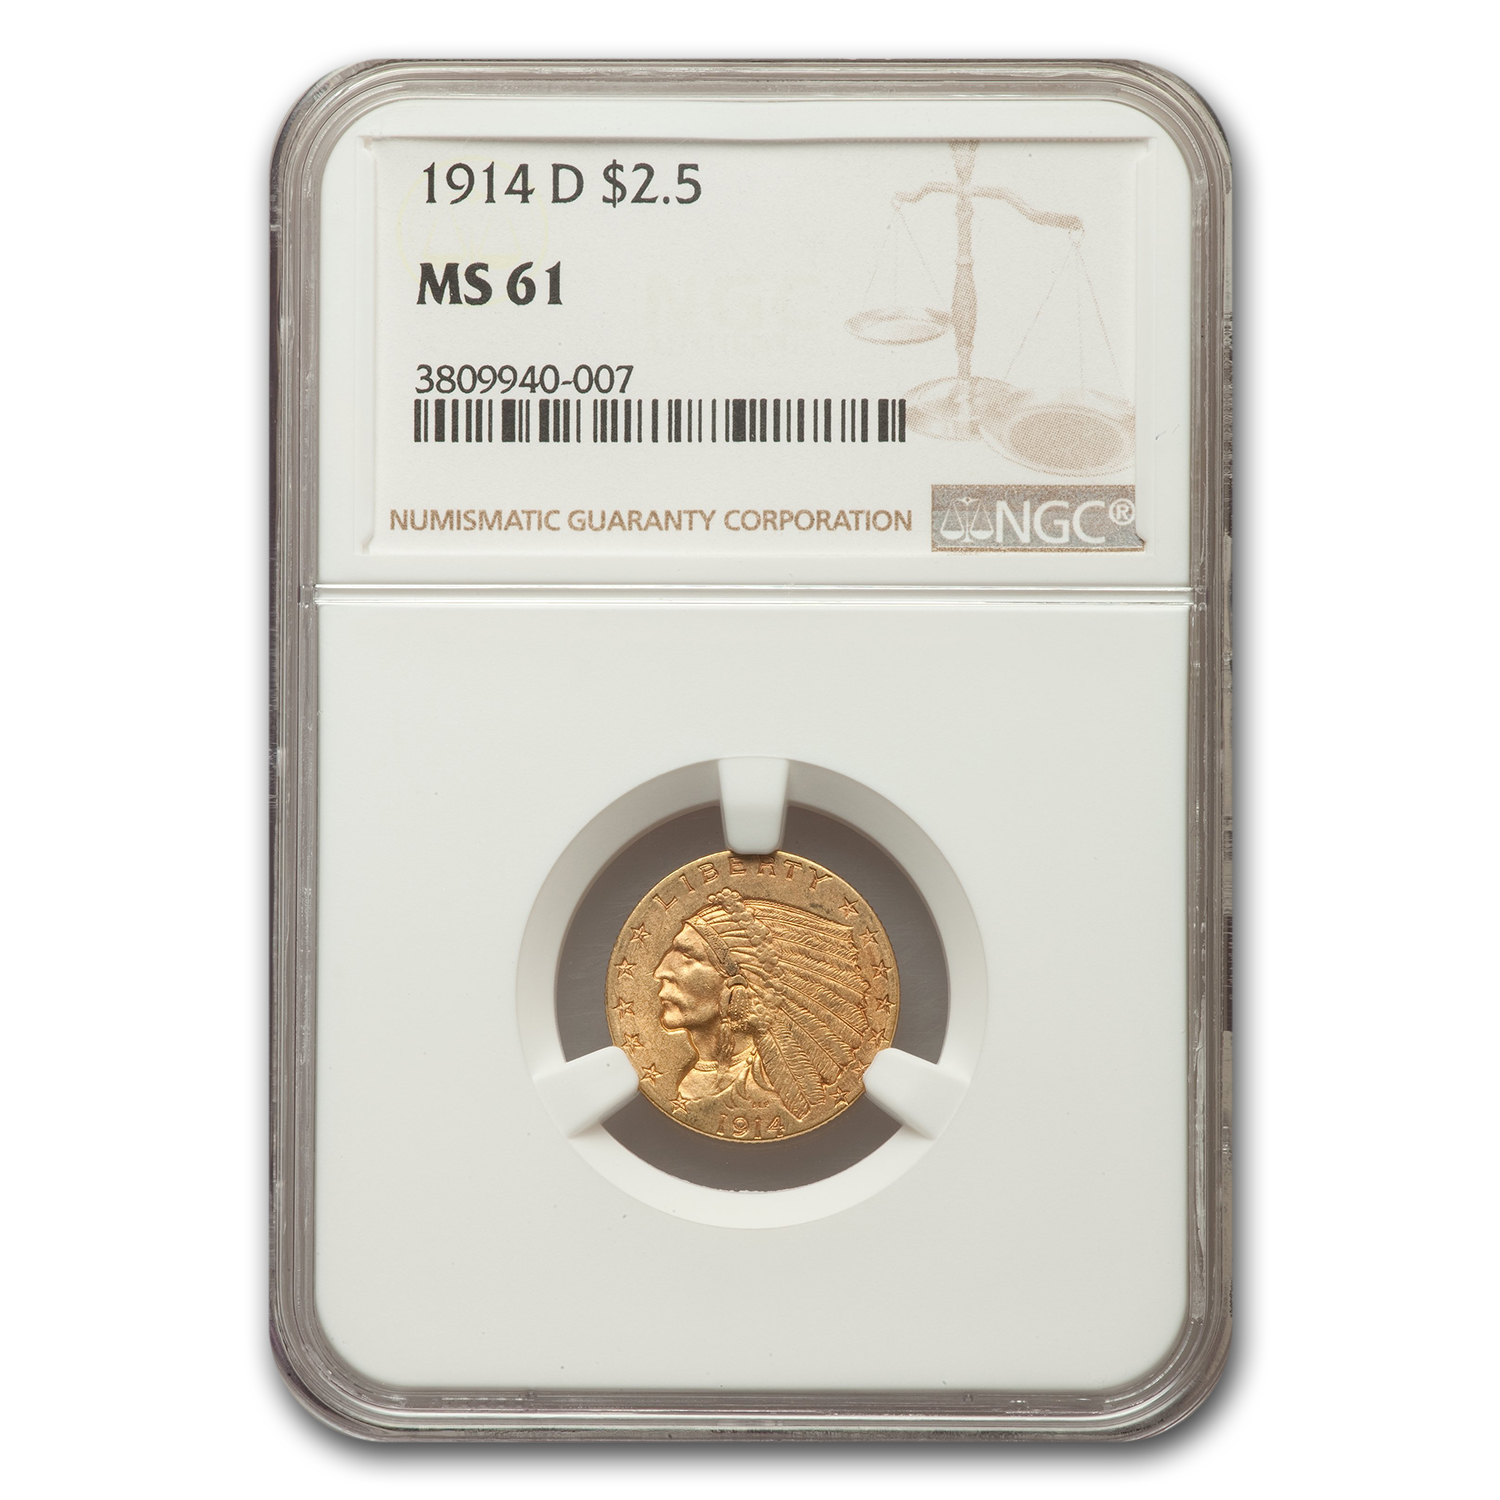 1914-D $2.5 Indian Quarter Eagle MS-61 NGC